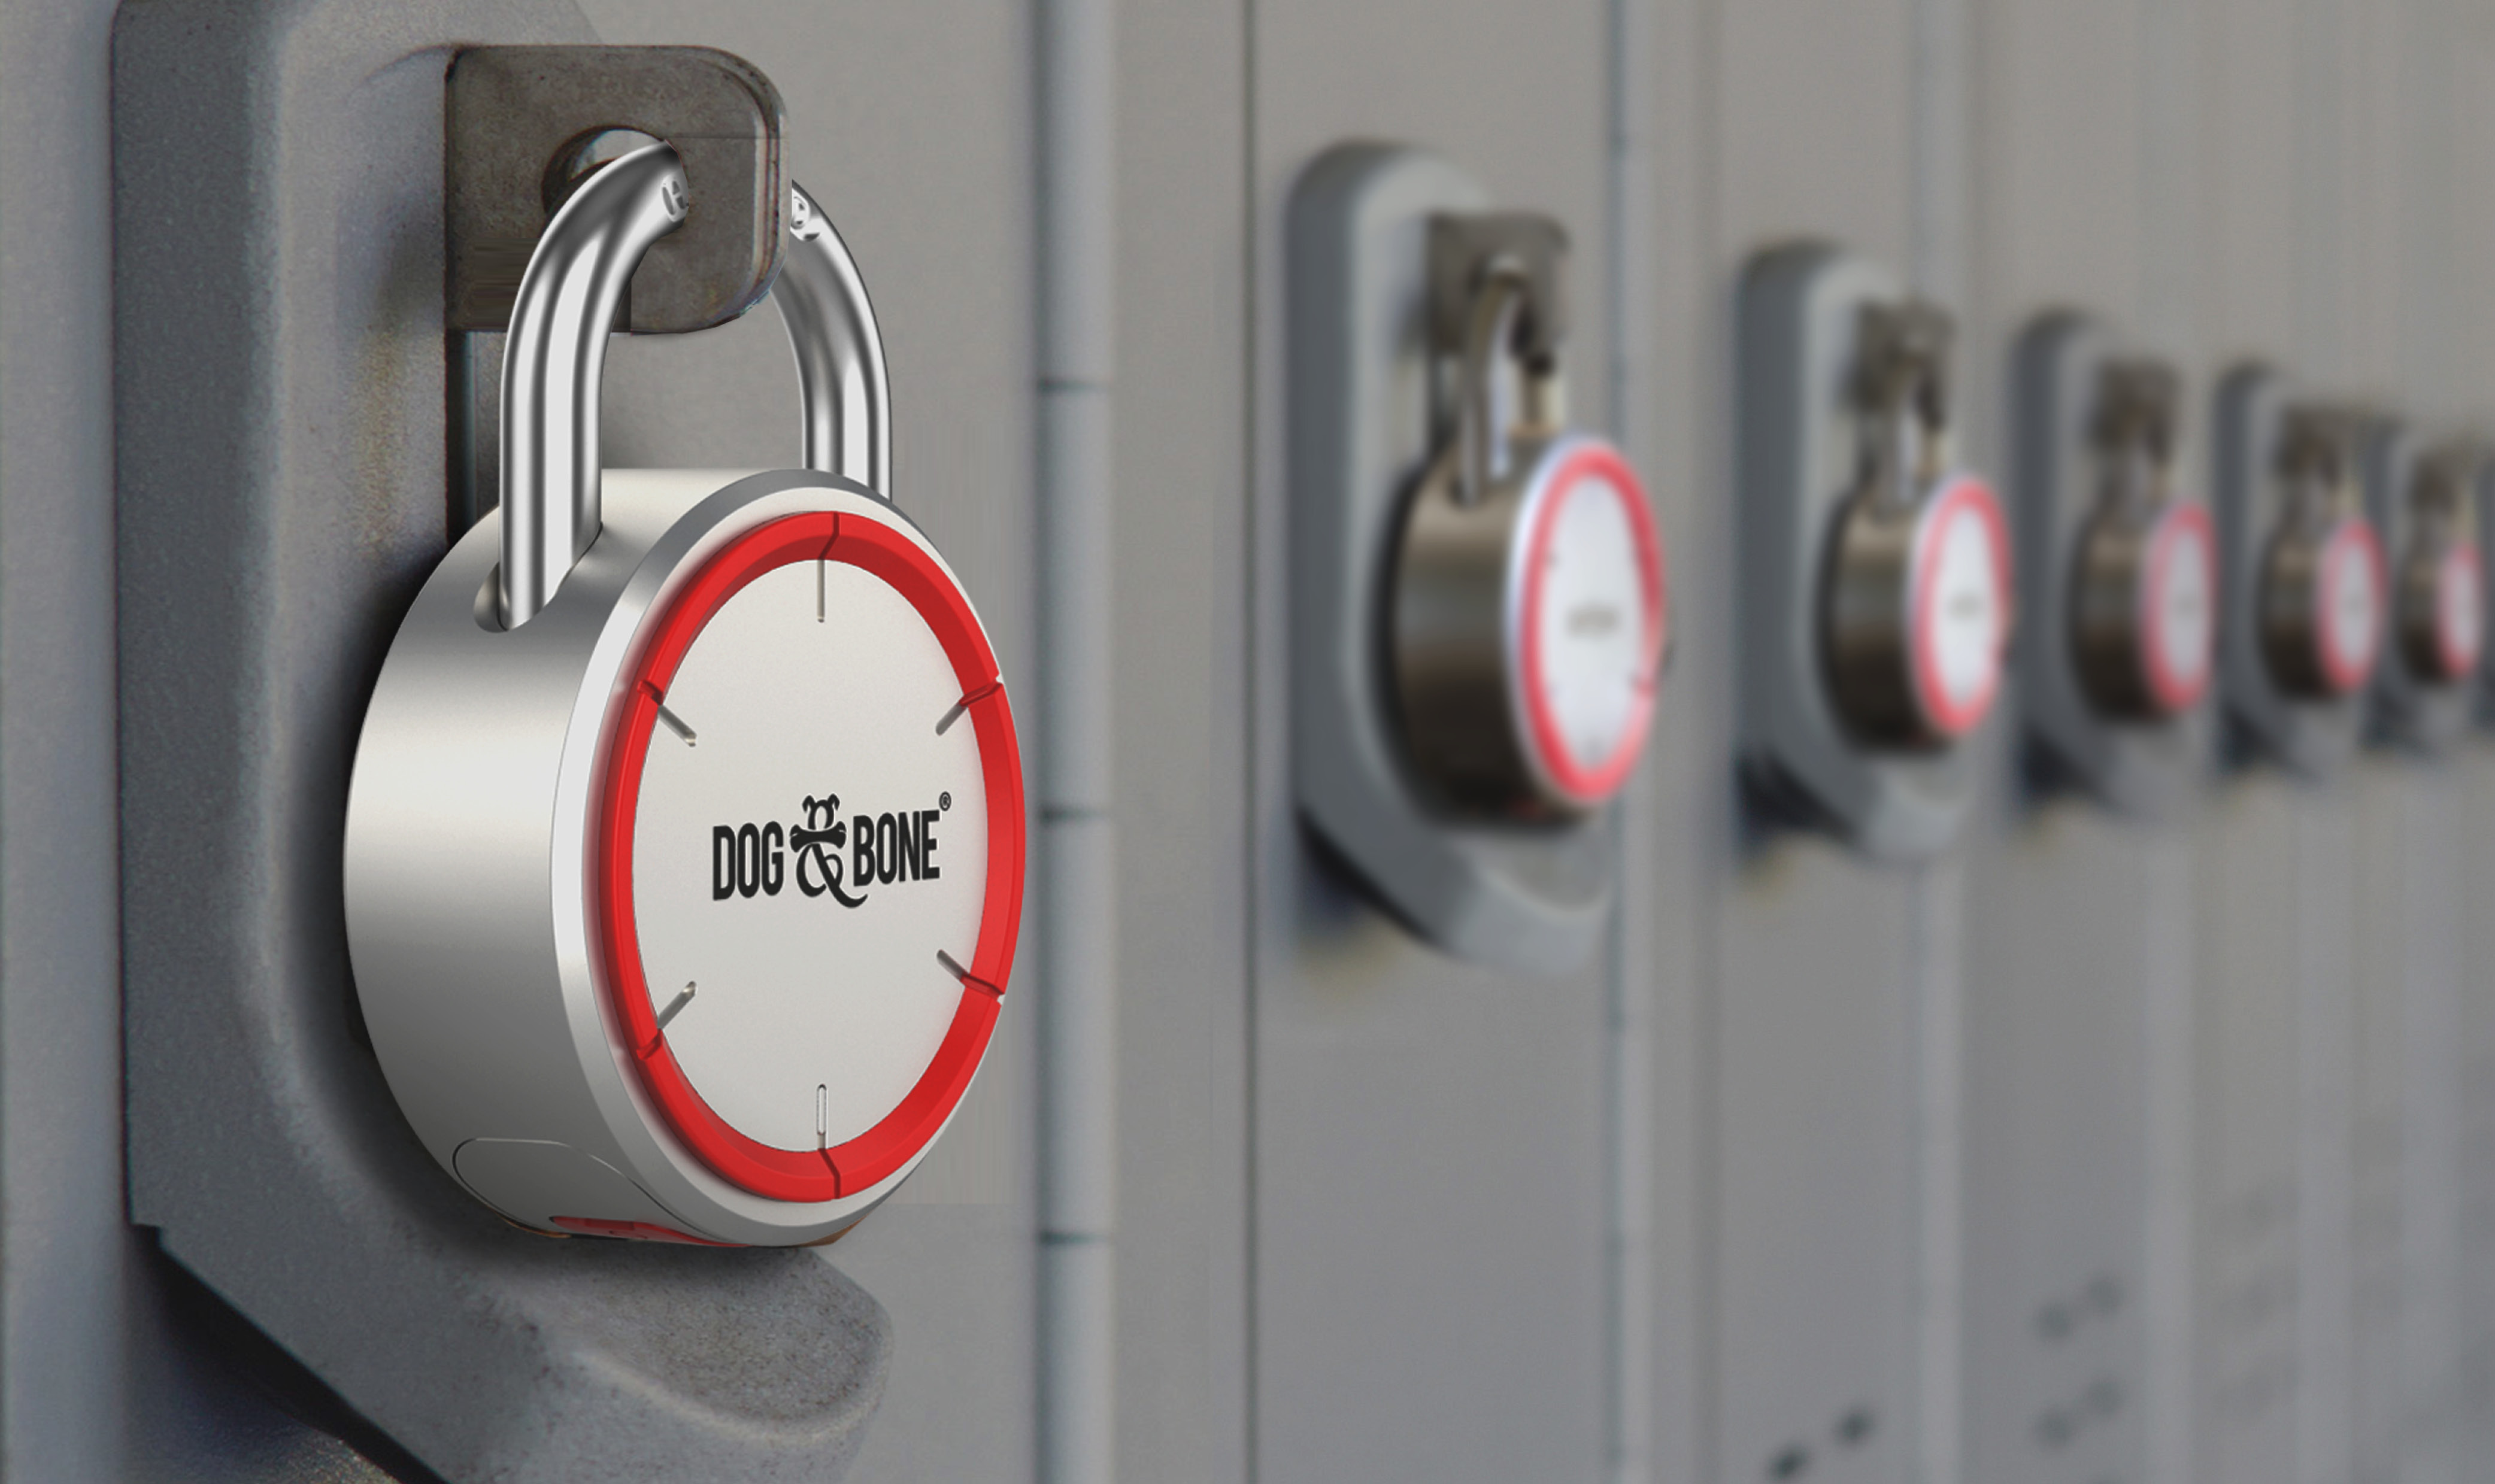 LockSmart padlock lockers close